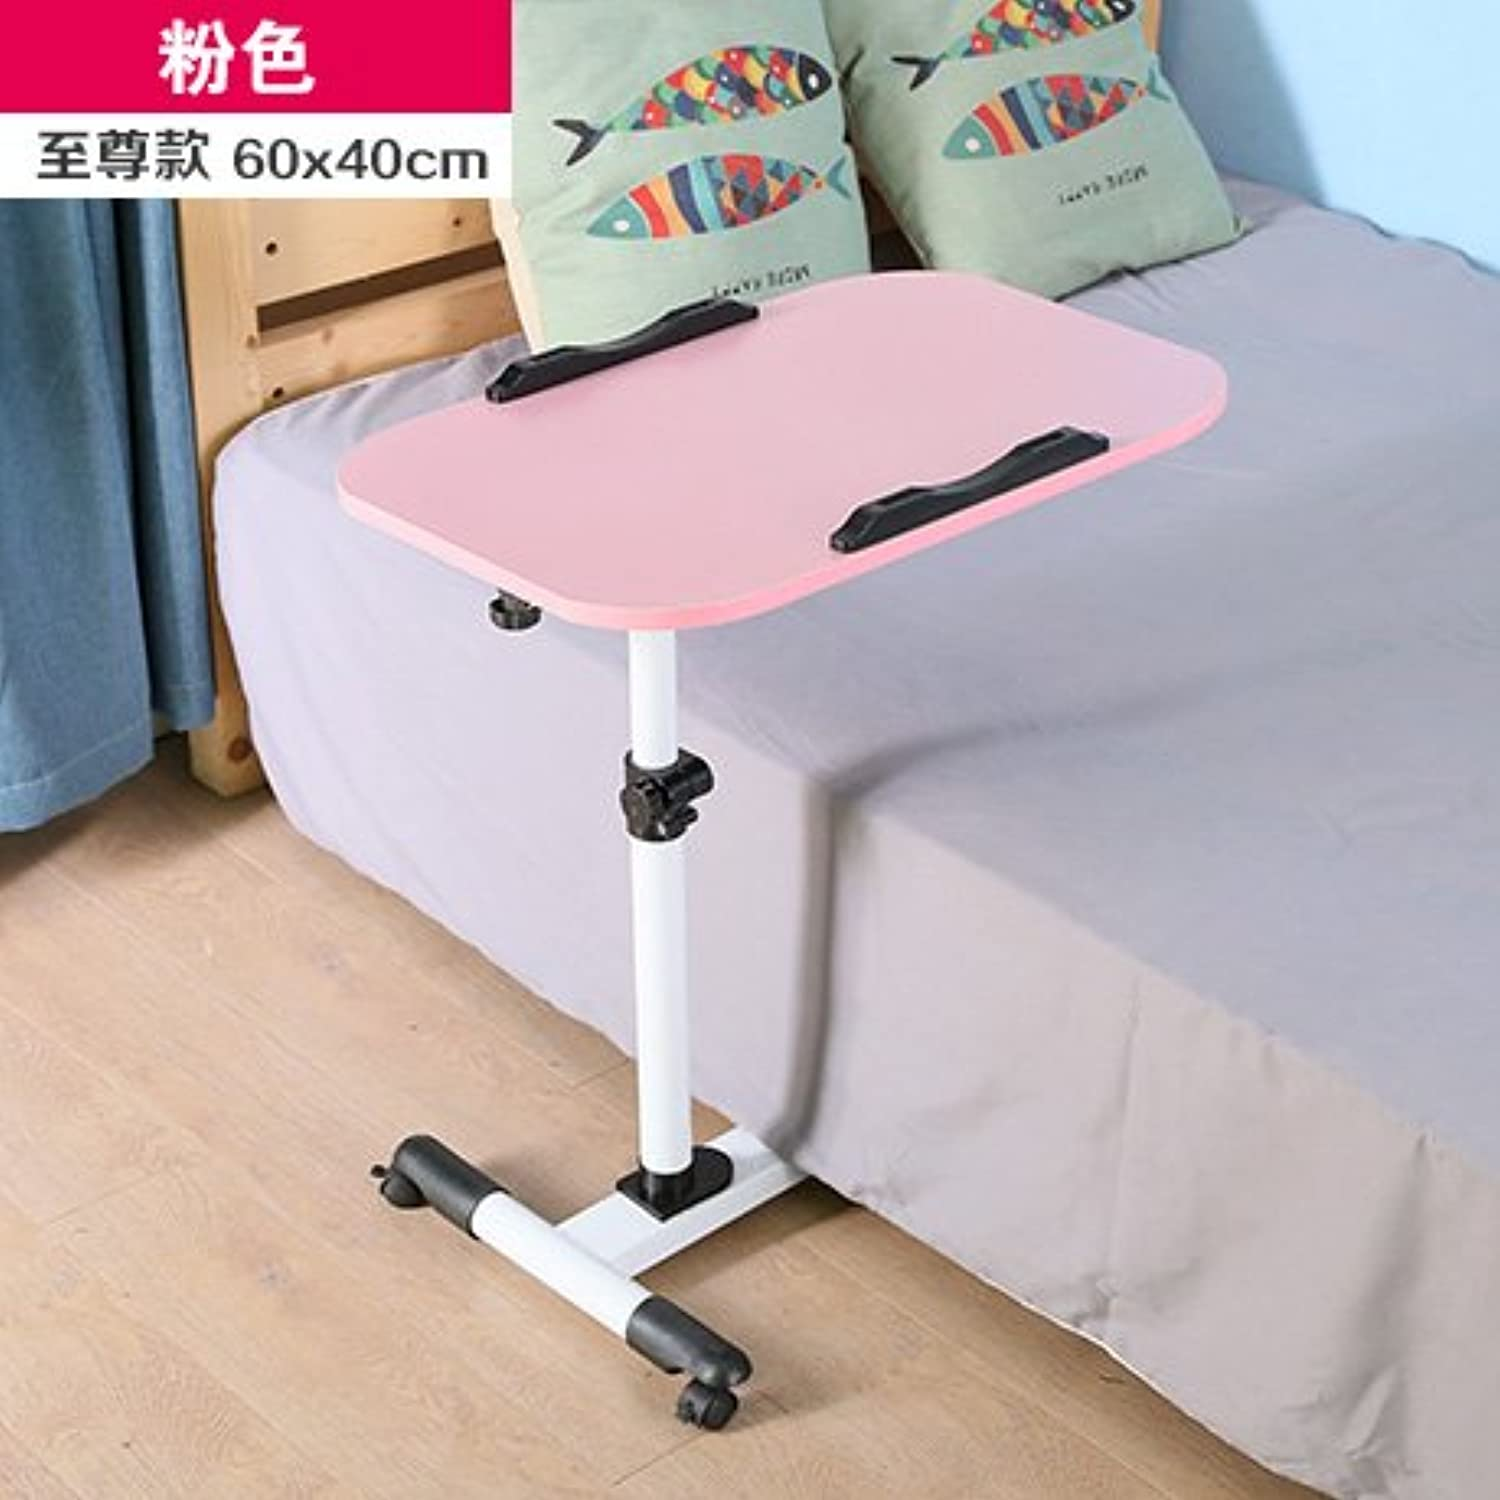 Portable Bedside Table for Notebook Computer Table Bed Sloping Sofa Side Table Tea Table,Pink